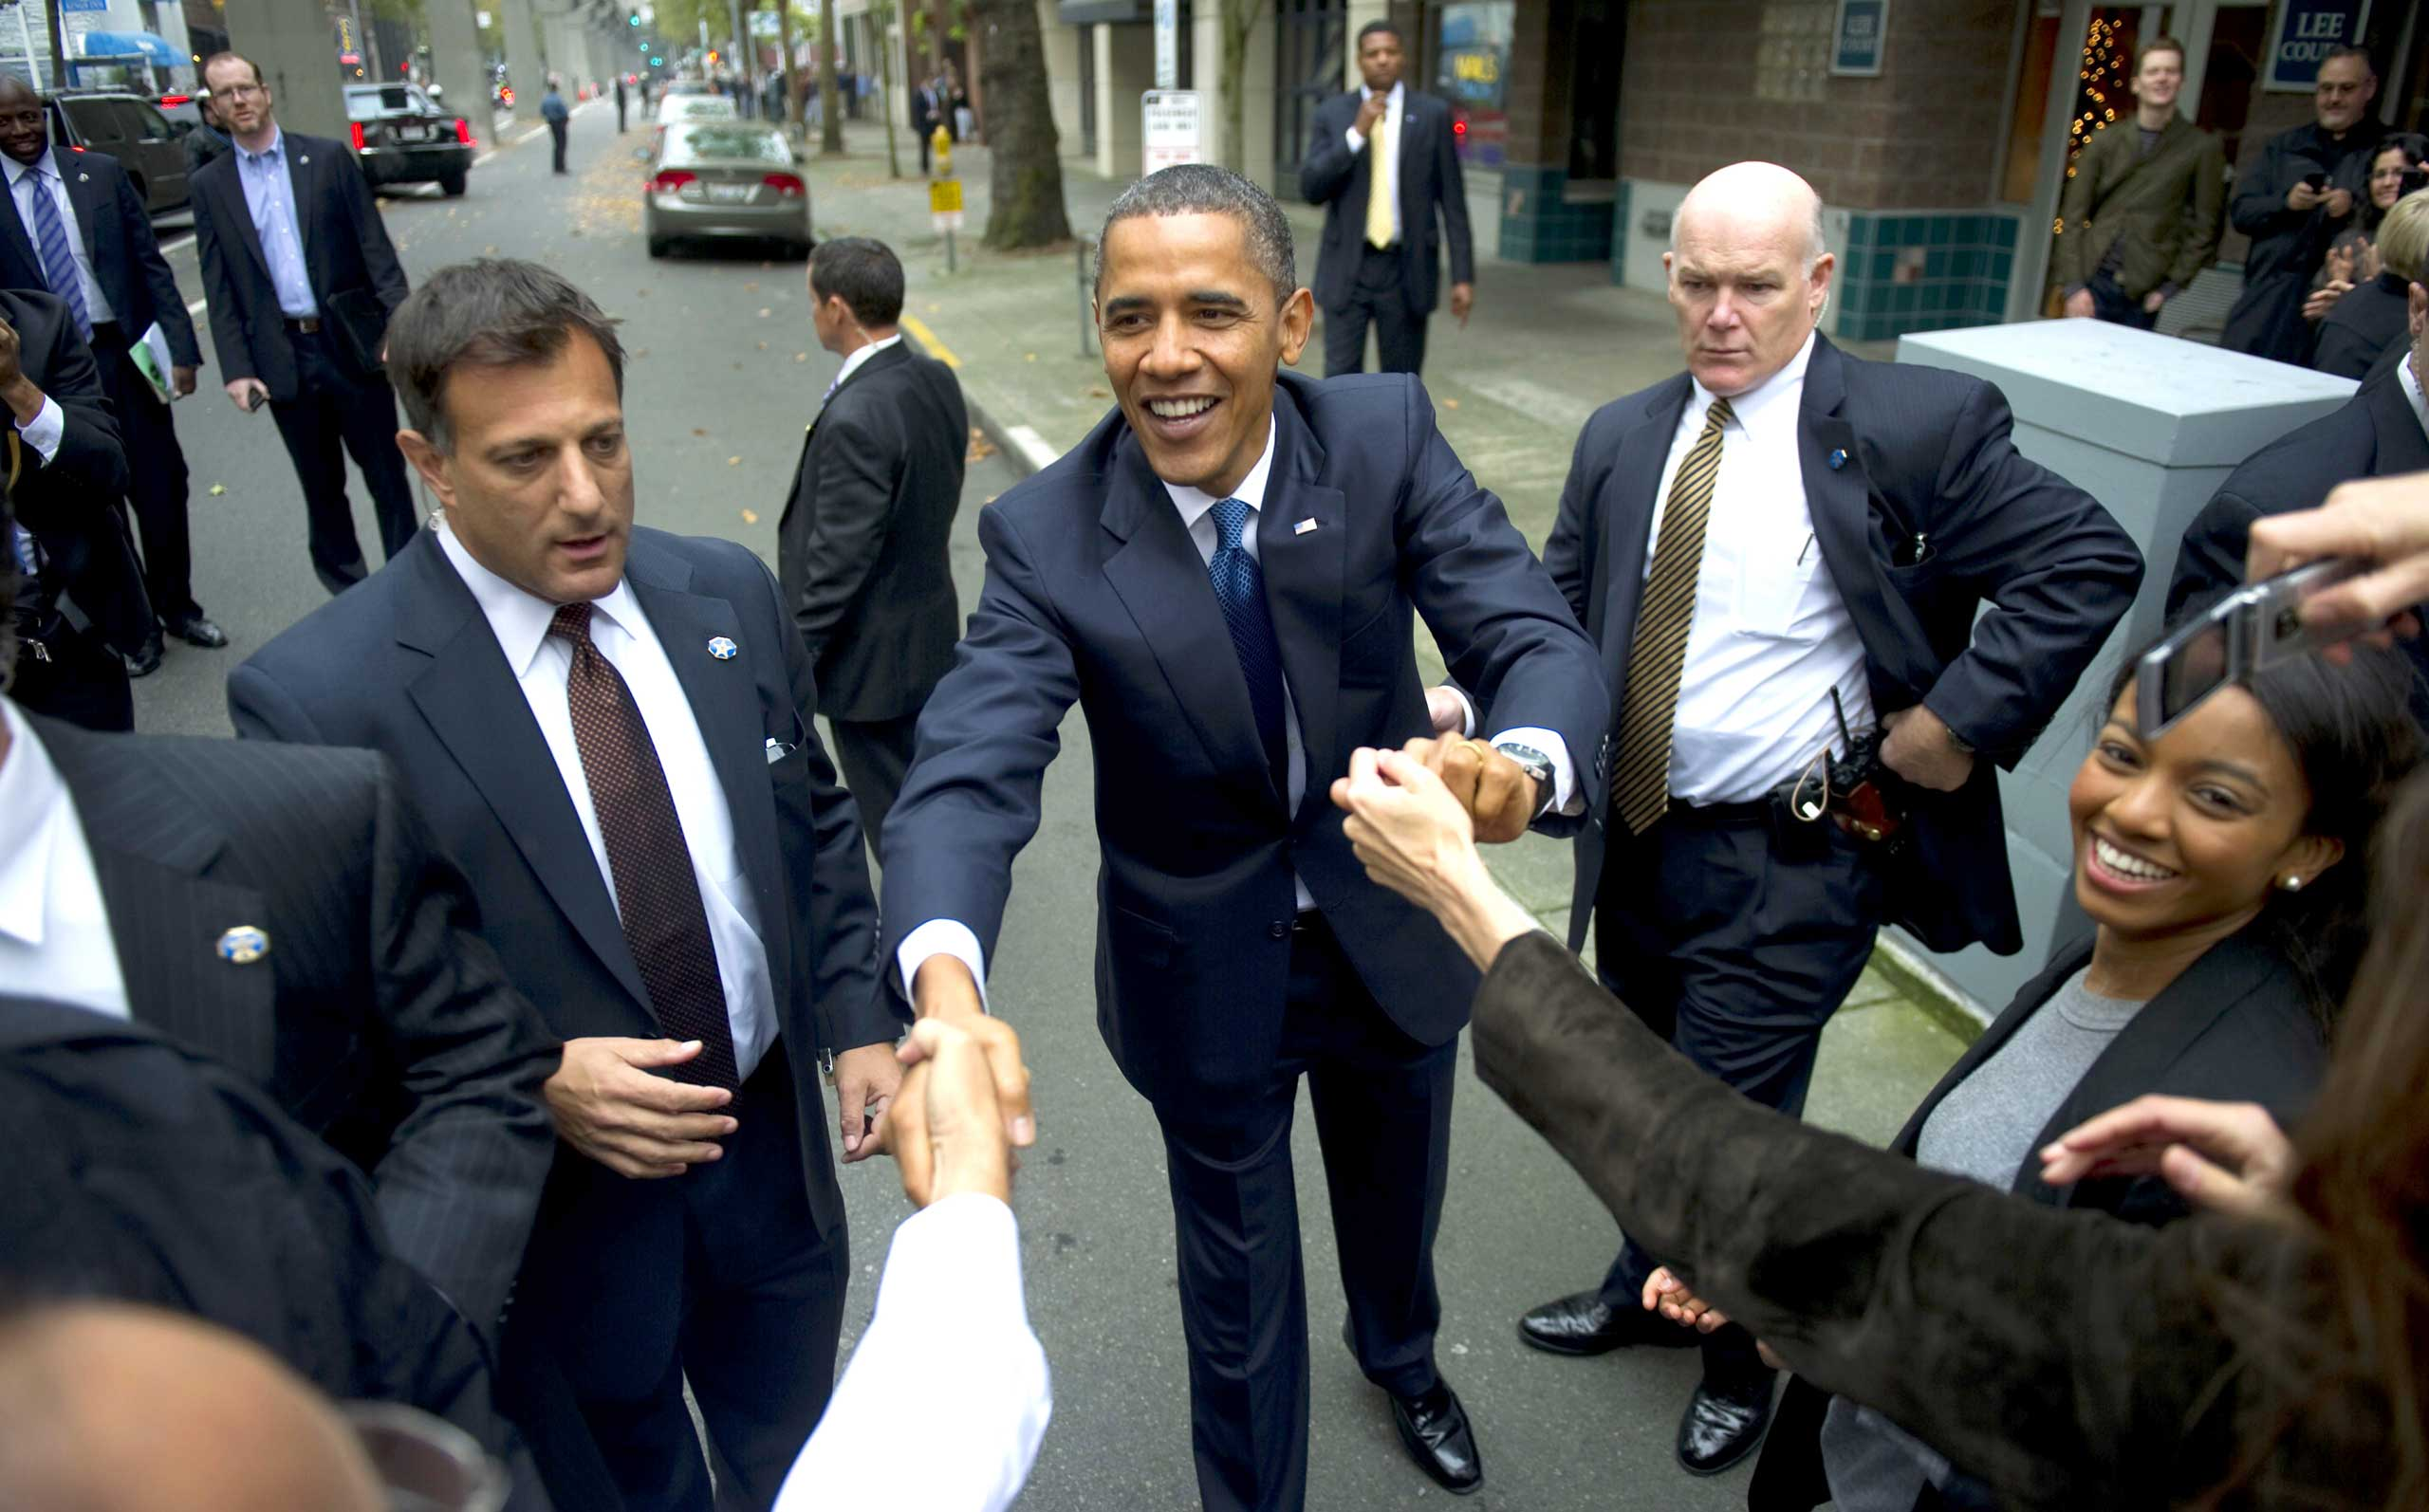 Eyeing those extended arms warily, Clancy keeps hold on President Barack Obama as he shakes hands with people outside of the Top Pot Doughnuts shop in Seattle on Oct. 21, 2010.